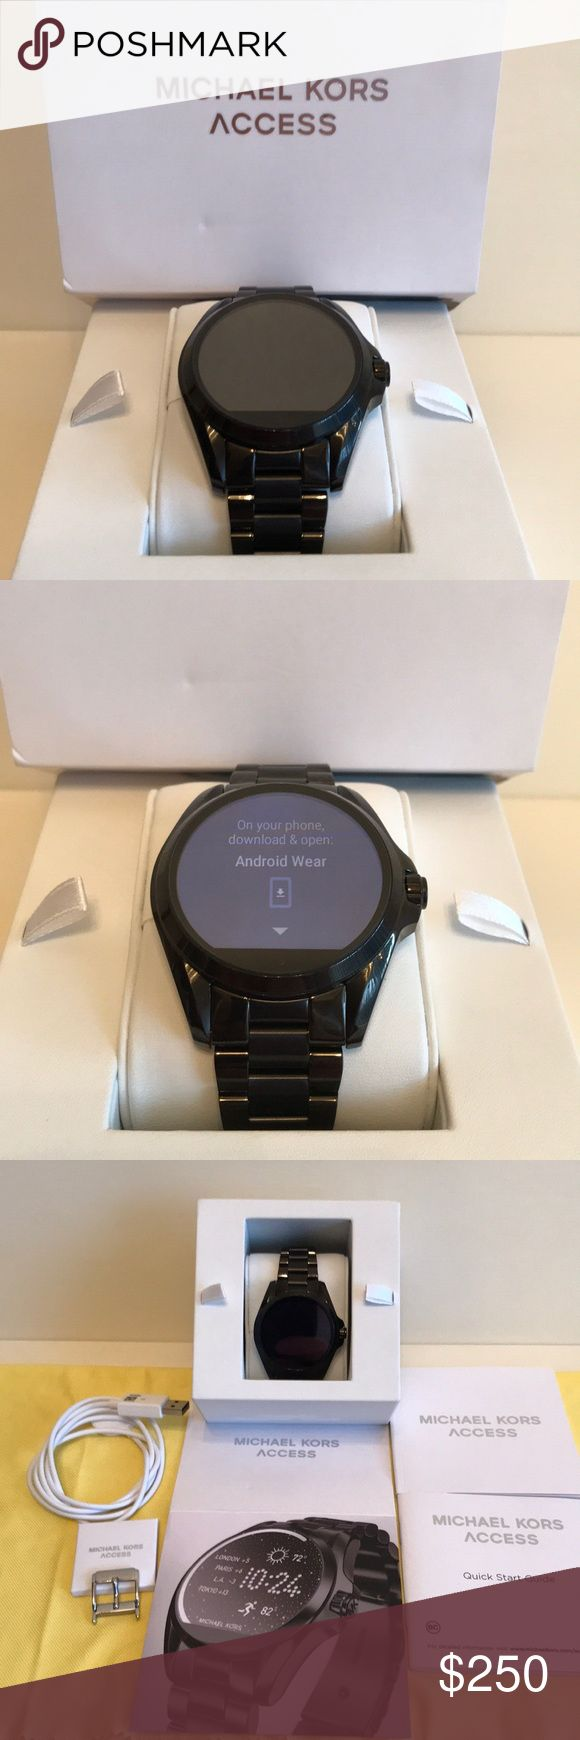 Michael Kors Access Bradshaw Smartwatch, MKT 5005 Brand new, in box. Works perfectly, never been worn  Michael Kors Access Bradshaw Smartwatch, MKT 5005. Color - black   - Compatible with iPhone and Android phones - Sleek Black  - Unisex  - 45mm Case - Digital Movement - Social Media Updates - Text/Email Alerts  - App Notifications  - Smart Help from Google - Built-in Fitness Tracking  - Voice-Activated Google - Clasp Fastening  - Digital  - Water Resistant up to 1 ATM Michael Kors…